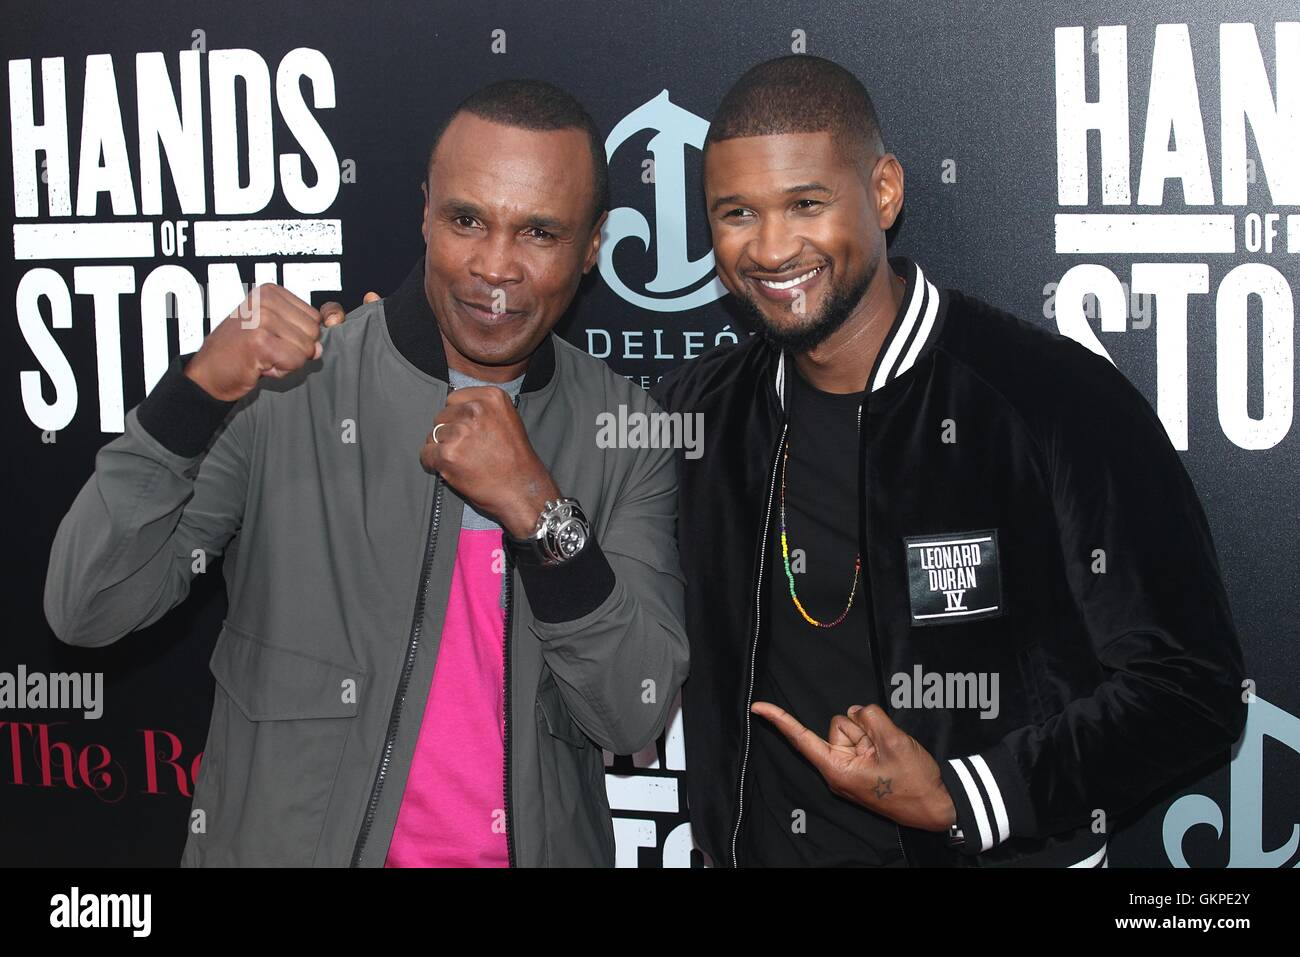 "New York, USA. 22. August 2016. Sugar Ray Leonard und Usher Raymond IV bei den ""HANDS OF STONE"" Premiere am SVA Stockfoto"